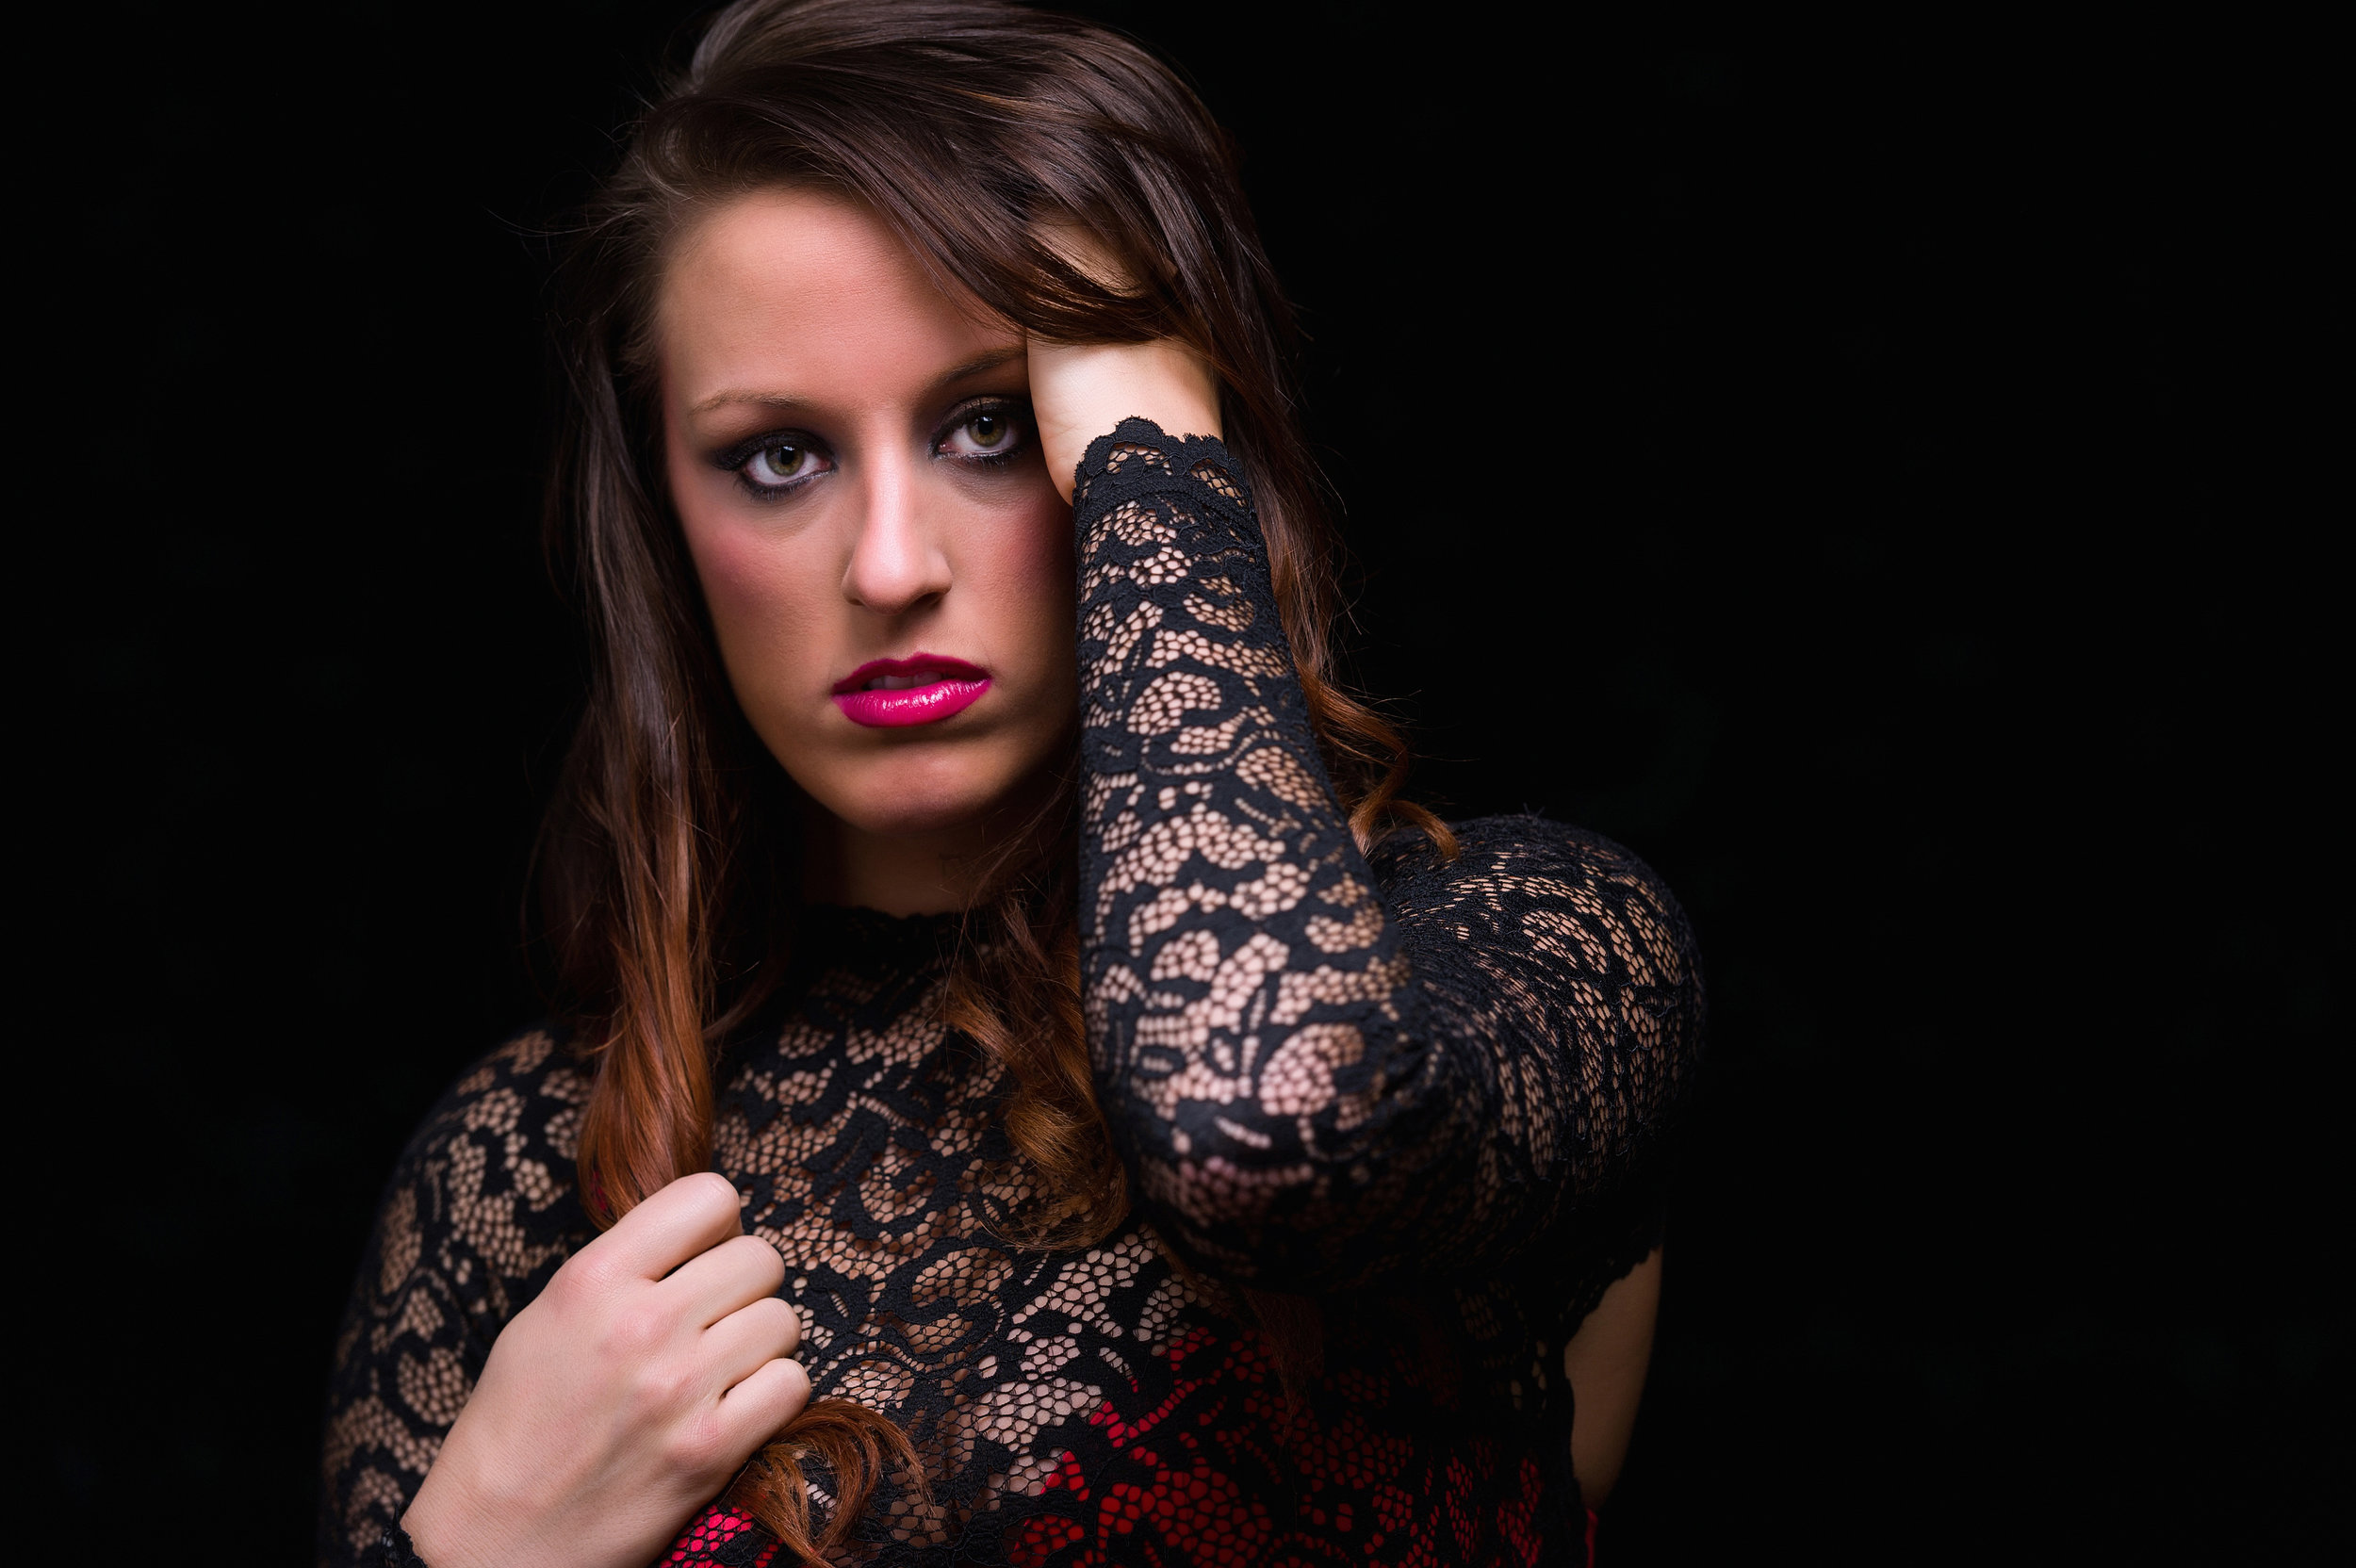 One from the shoot with Tabitha